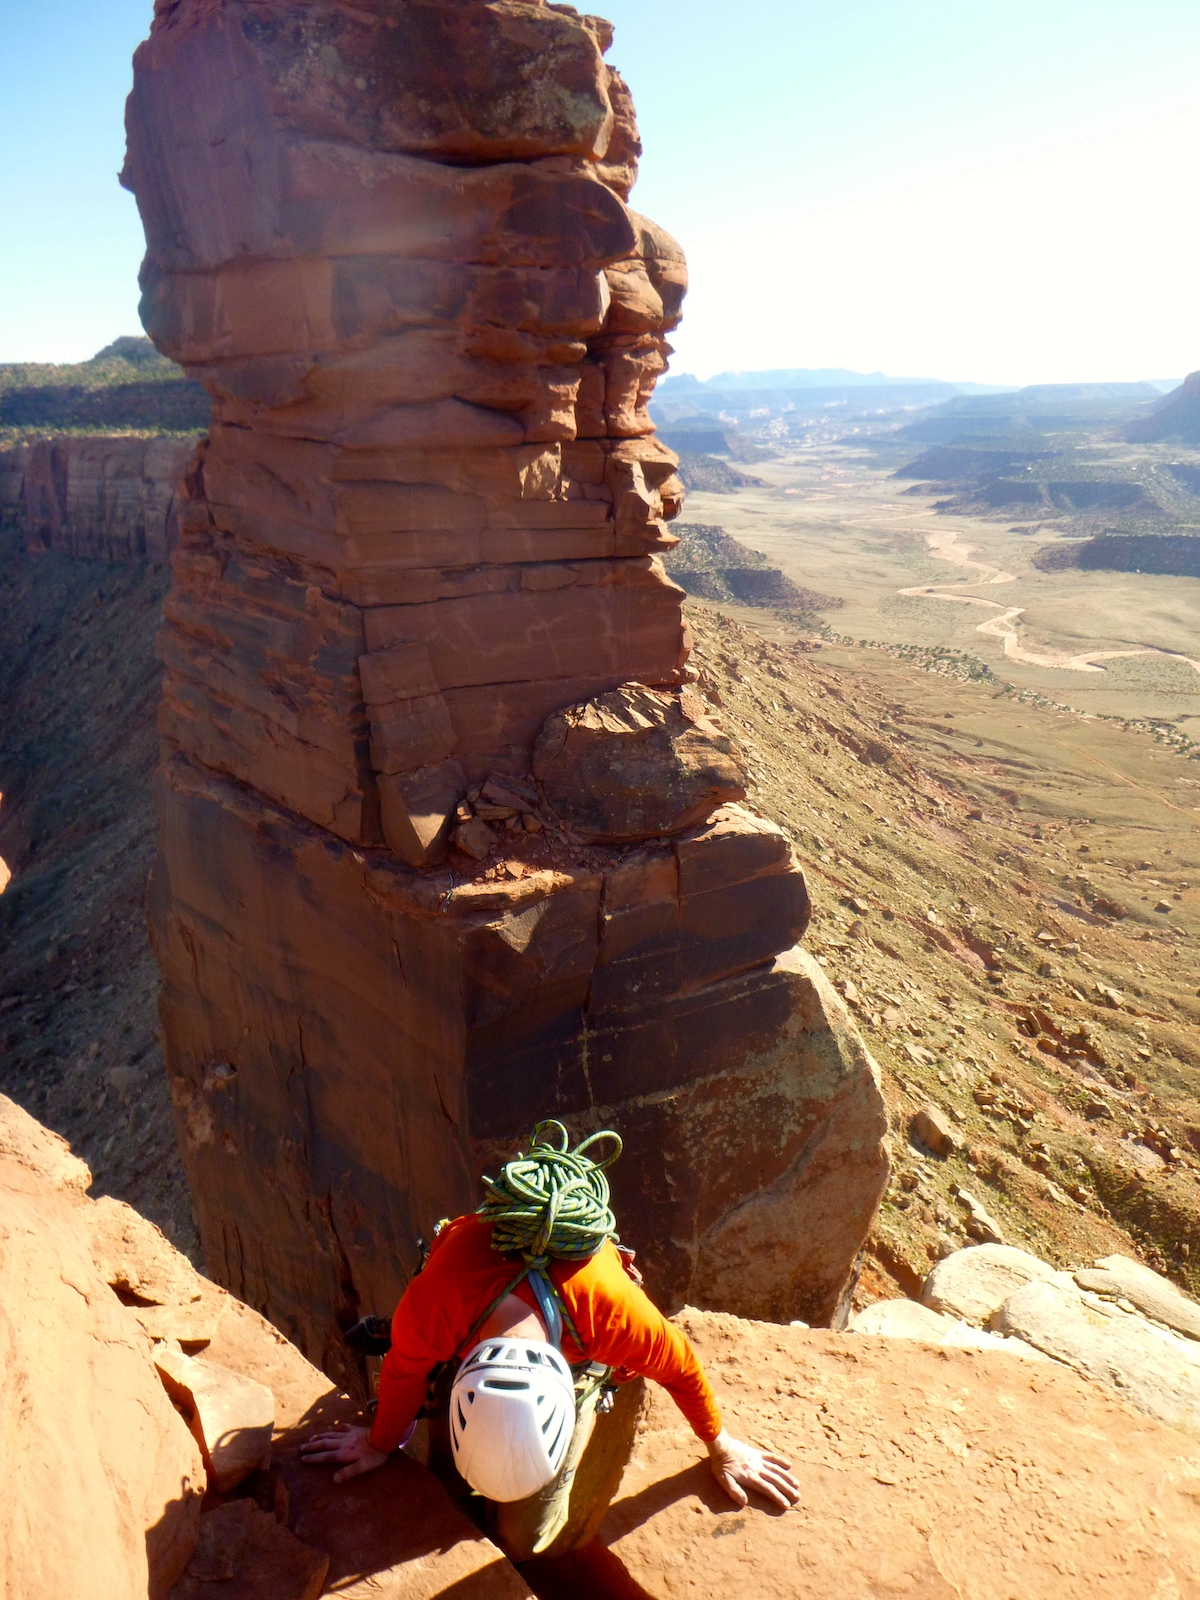 Ryan Franz down climbs from the summit of Bridger Jack Butte to access a rappel station in April 2015. The King of Pain pinnacle is in the background. The area is part of the Bears Ears National Monument designated by outgoing President Barack Obama on December 28, 2016. [Photo] Derek Franz